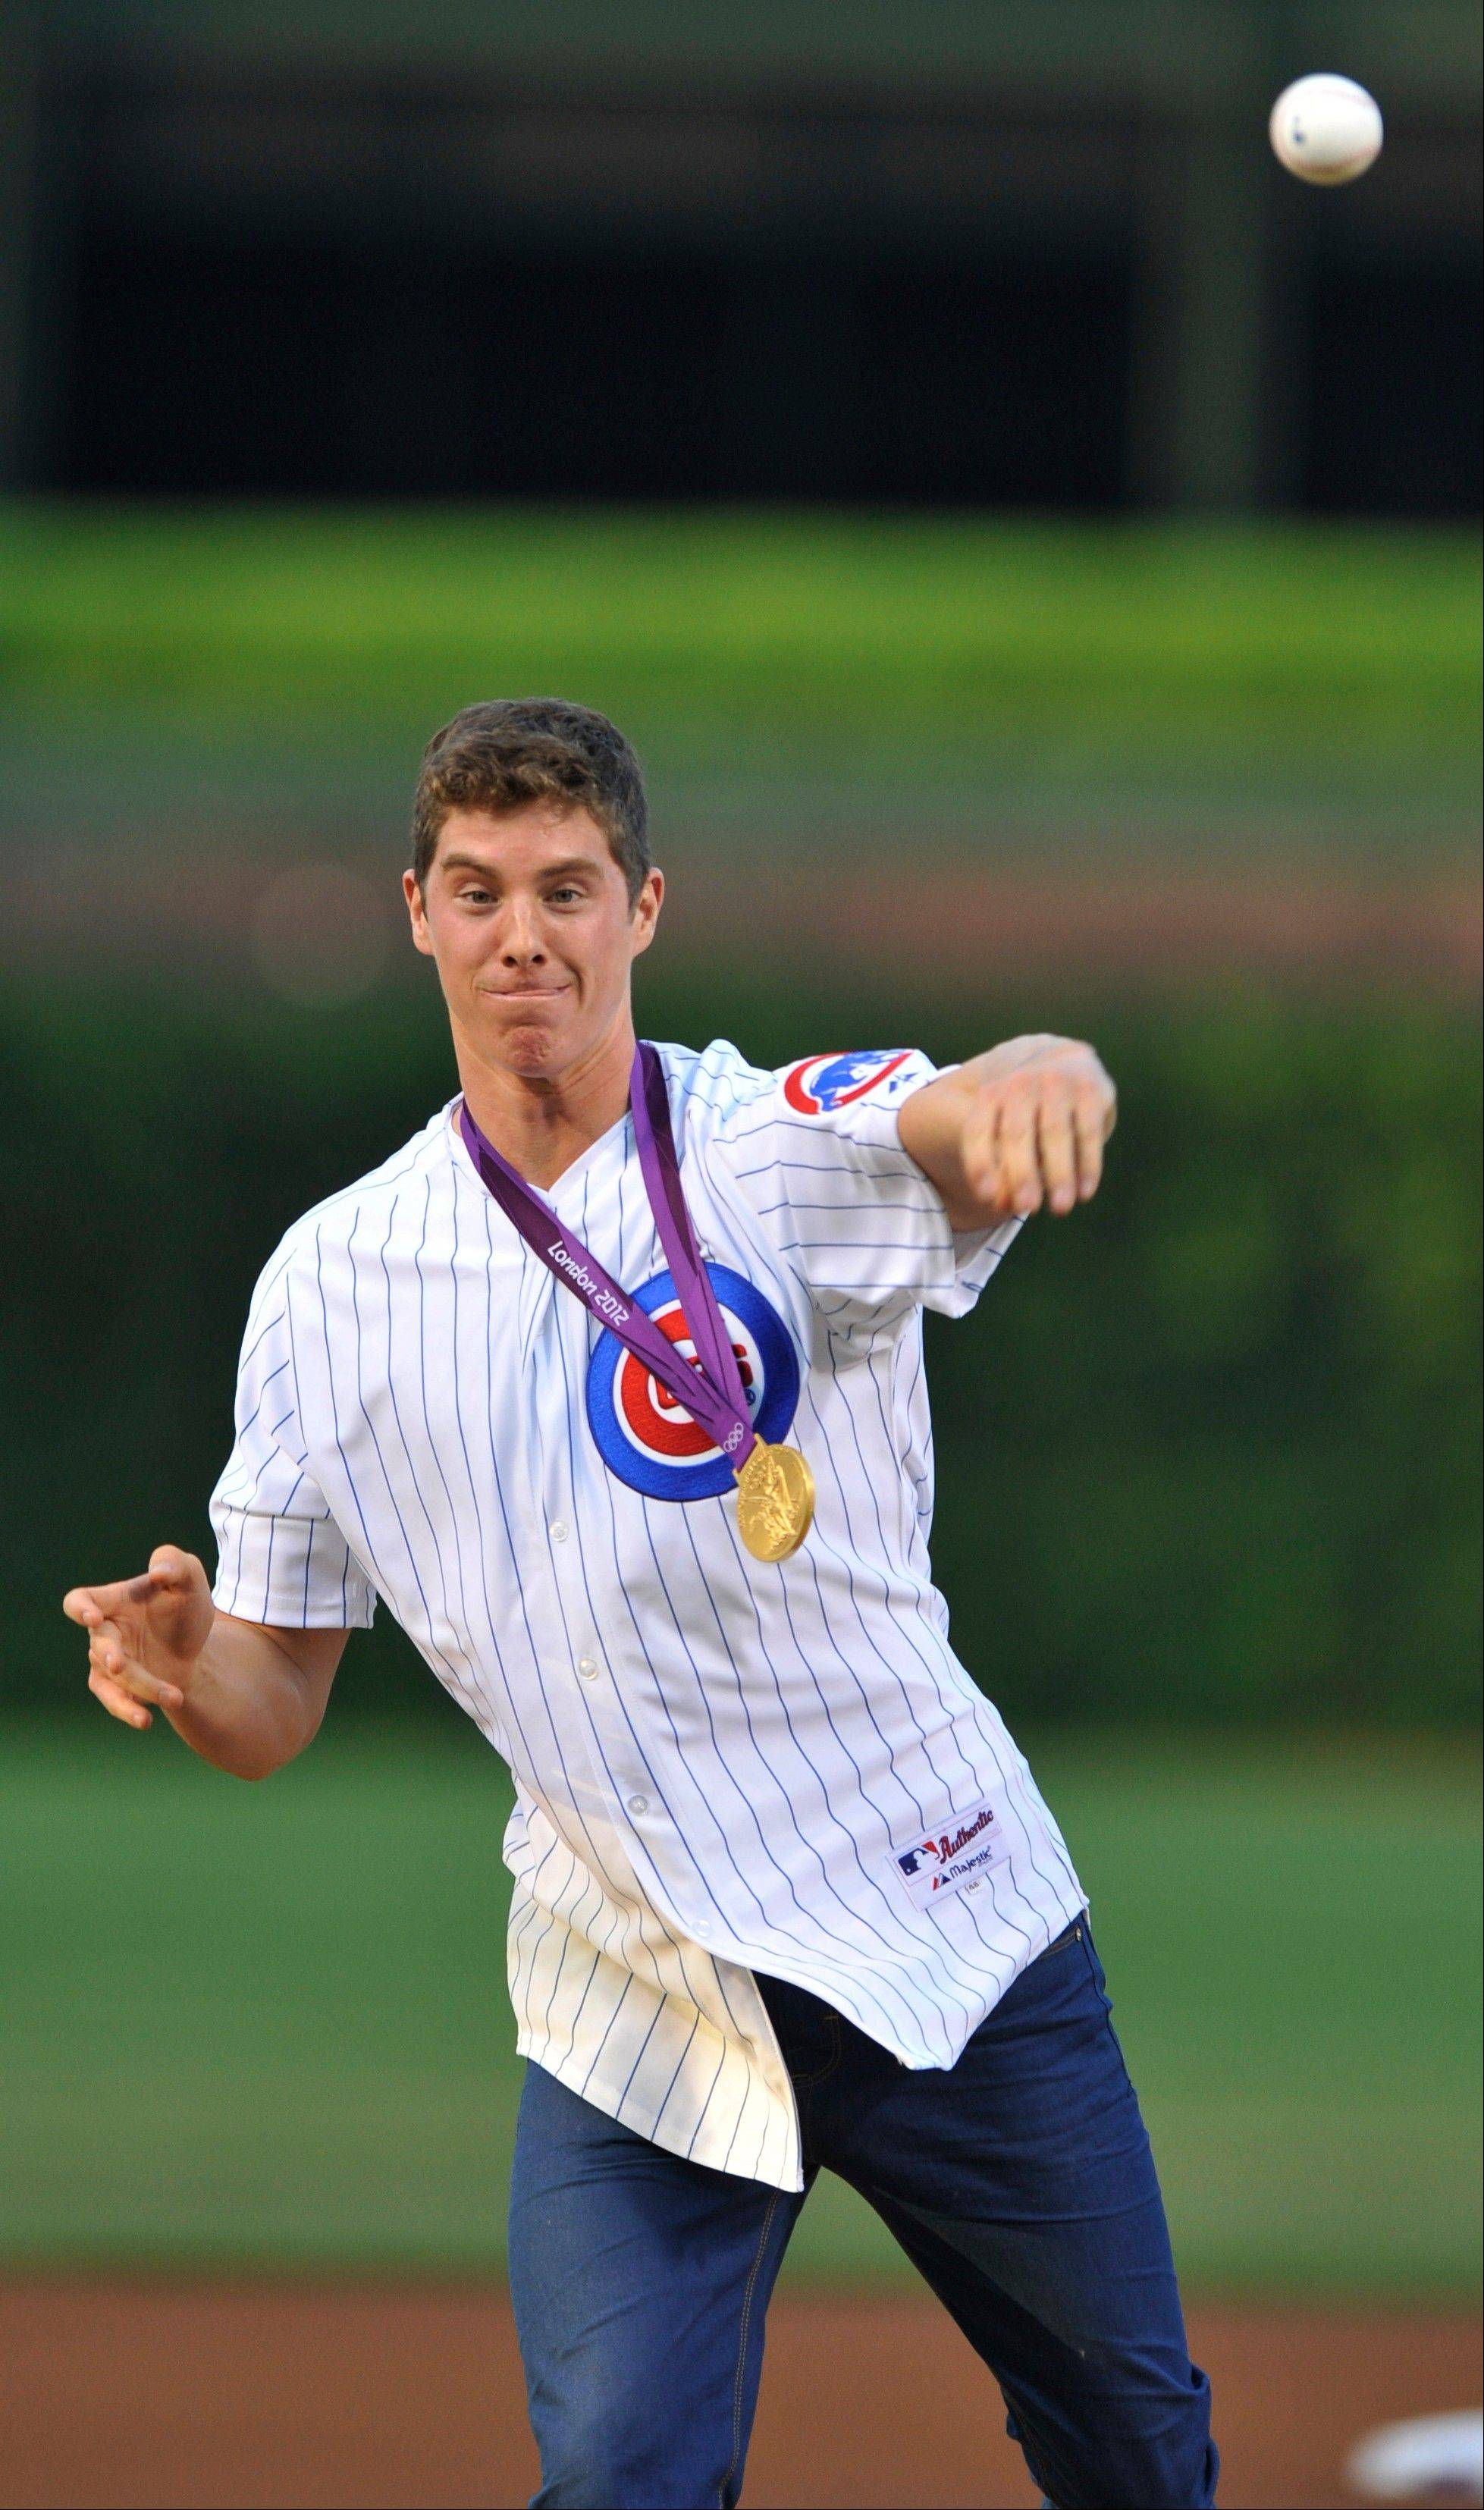 Olympic gold medalist Conor Dwyer throws out the ceremonial first pitch before the Cubs took on the Astros at Wrigley Field on Tuesday. Dwyer won a gold medal as a member of the U.S. 4x200-meter freestyle relay team.